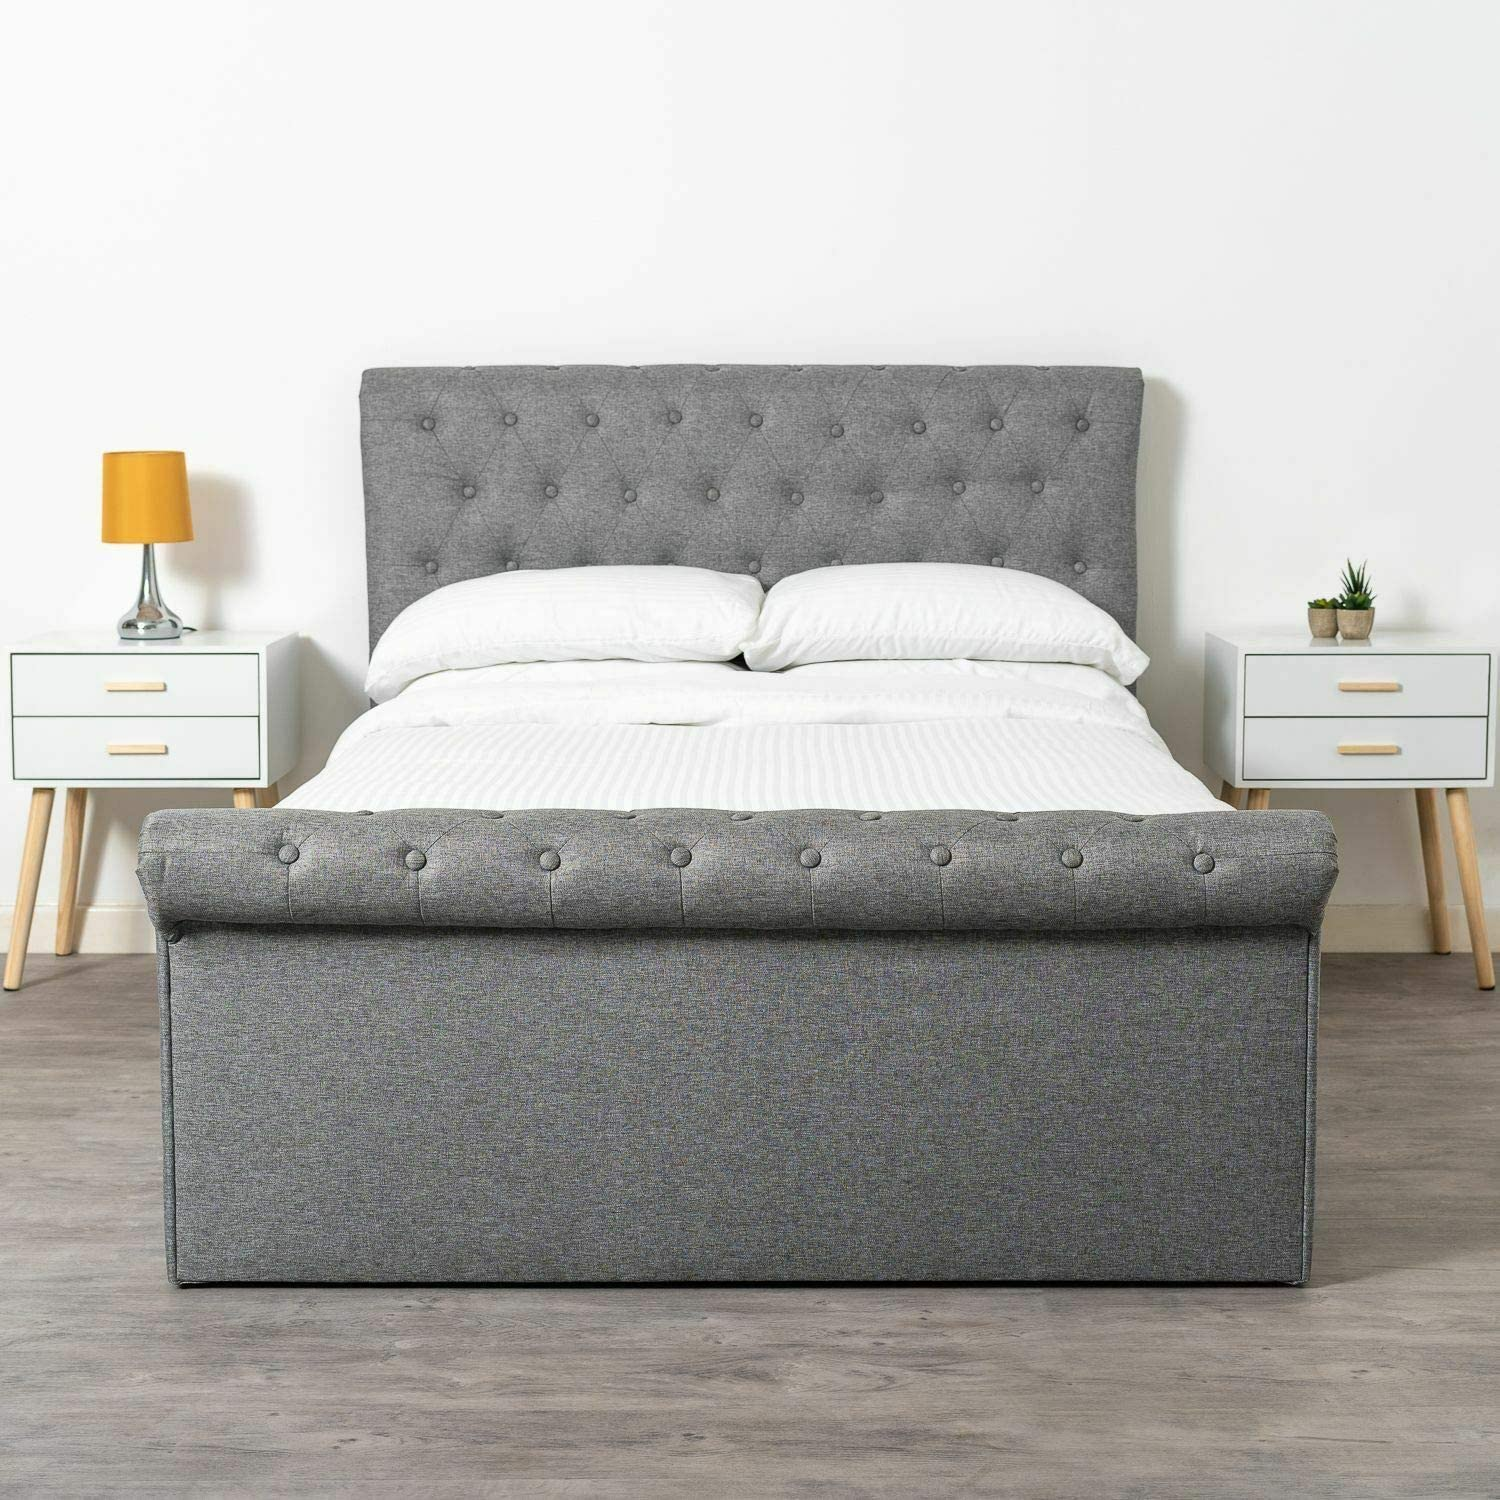 Home Treats Winfield Ottoman Bed Frame The Side Lift Up Storage Bed Available In Small Double Double King Size King Size Amazon Co Uk Kitchen Home